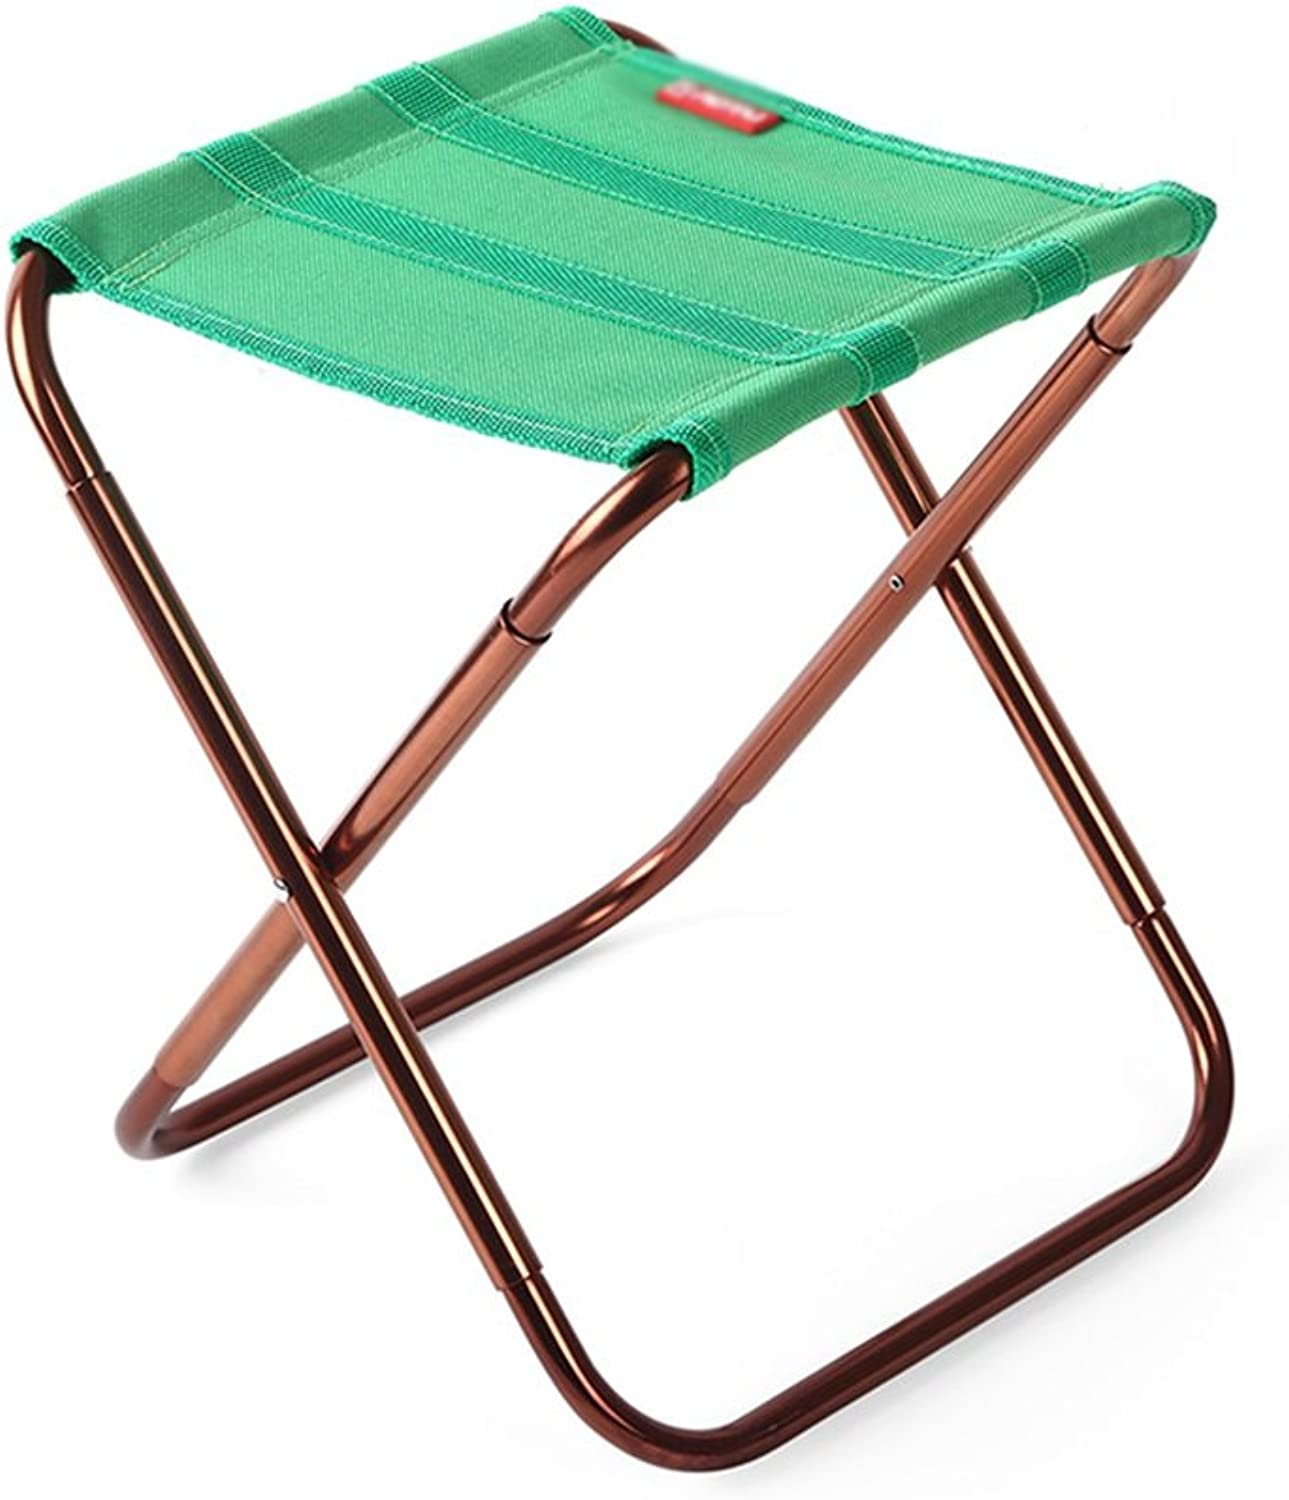 Chair Folding Stool Portable Outdoor Folding Chair Fishing fine Arts Chair Adult Small Mazar (color   Green, Size   222328 cm)